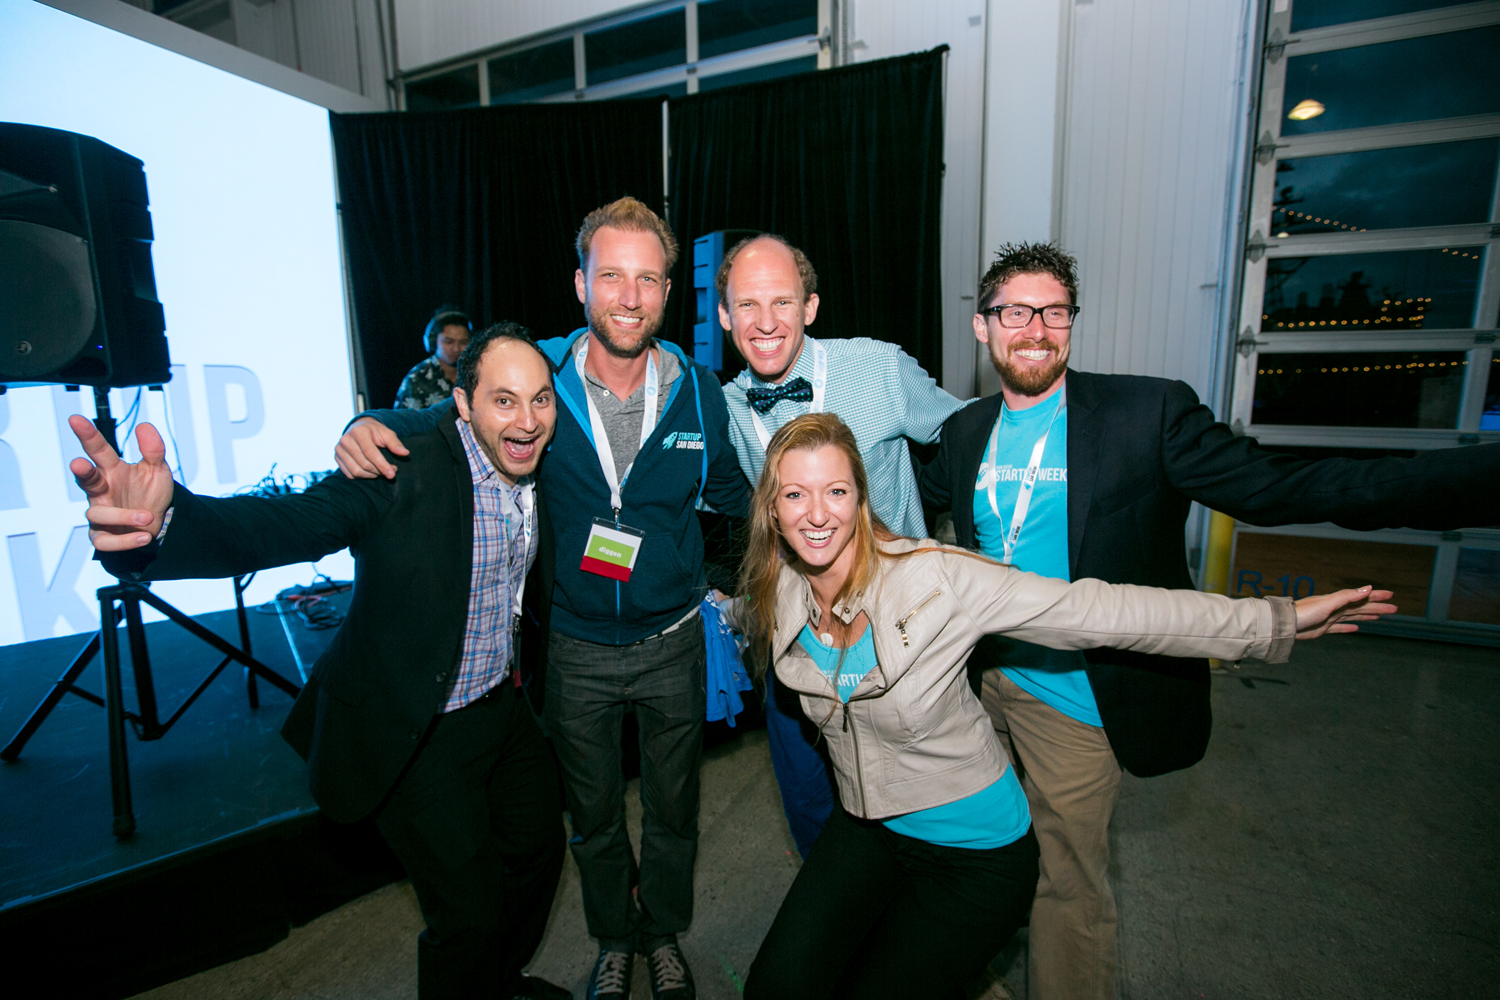 StartupSD-SDSW-San-Diego-Startup-Week-2016-Opening-Ceremony-Photo-Gallery-by-Bronson-Pate-of-Bauman-Photographers